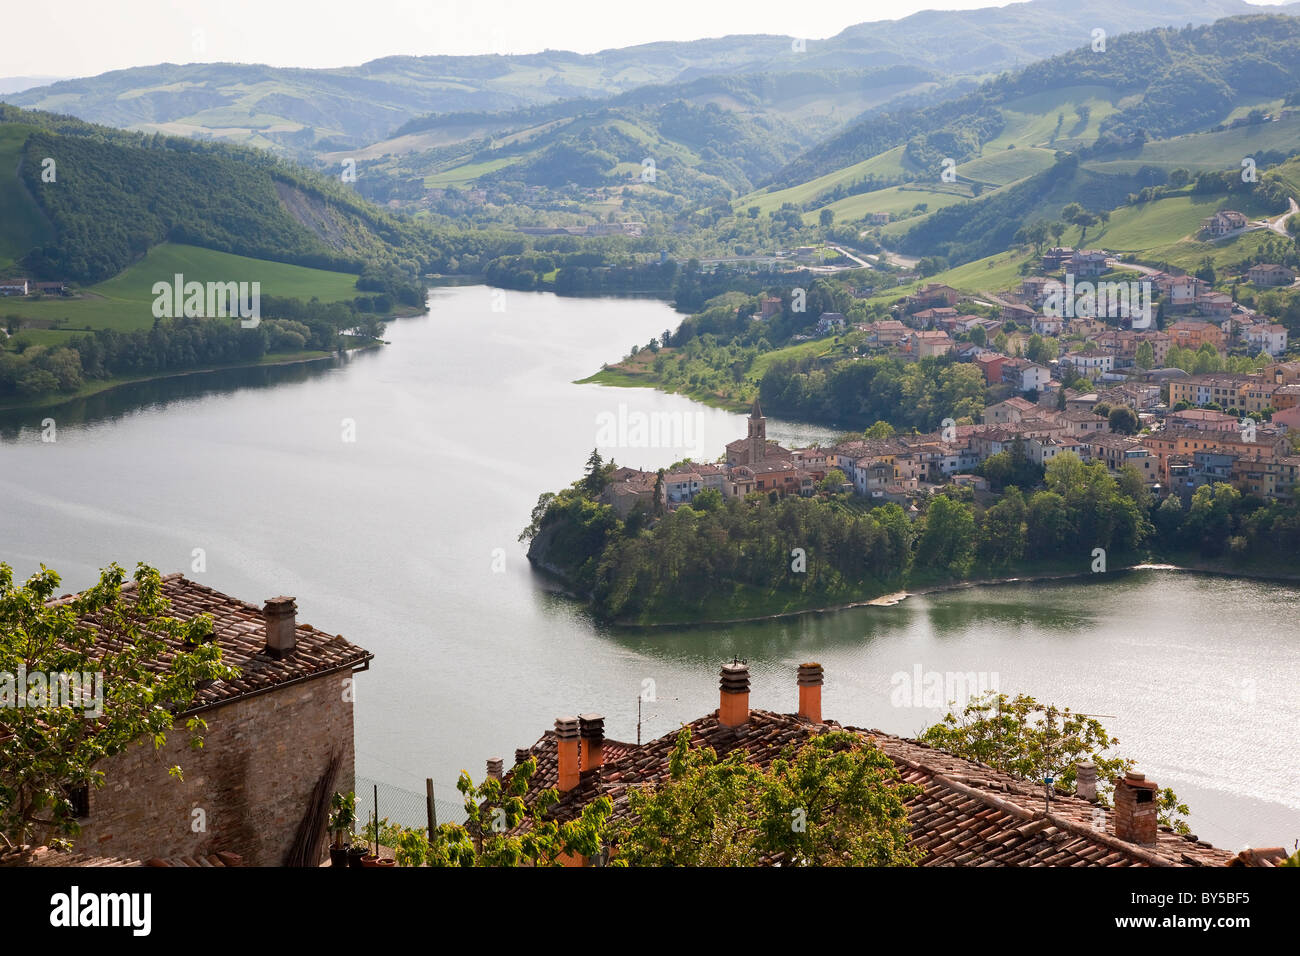 View over lake from Sassocorvaro village to Mercatale village, Marche, Italy - Stock Image